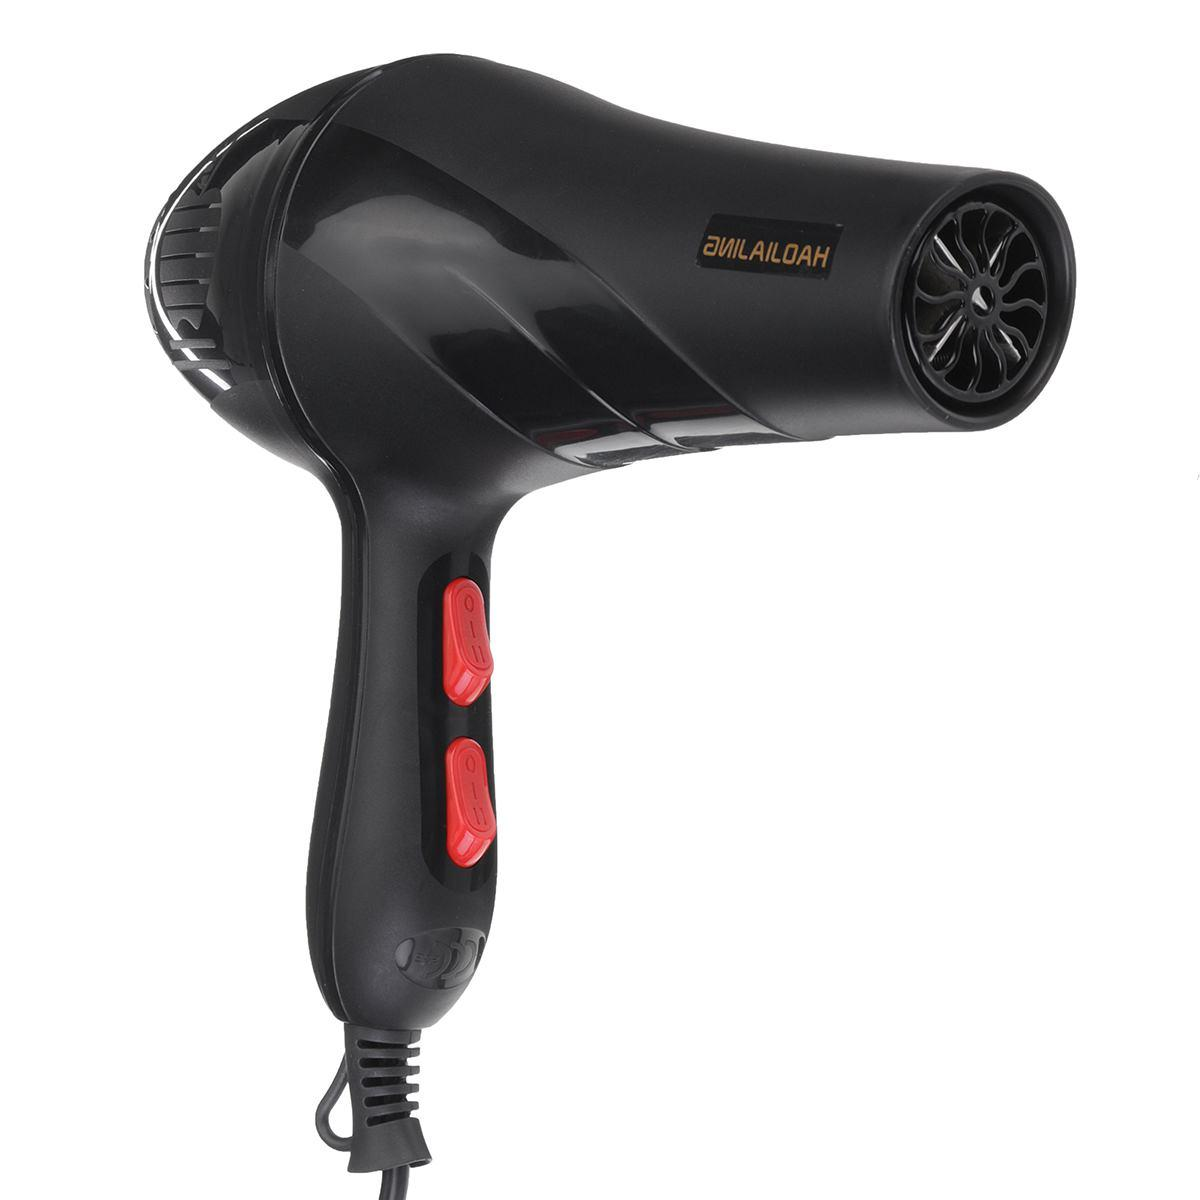 Professional Strong Hair for Barber Home Portable <font><b>Dryer</b></font> Hair <font><b>Dryer</b></font> Fan 220-240V